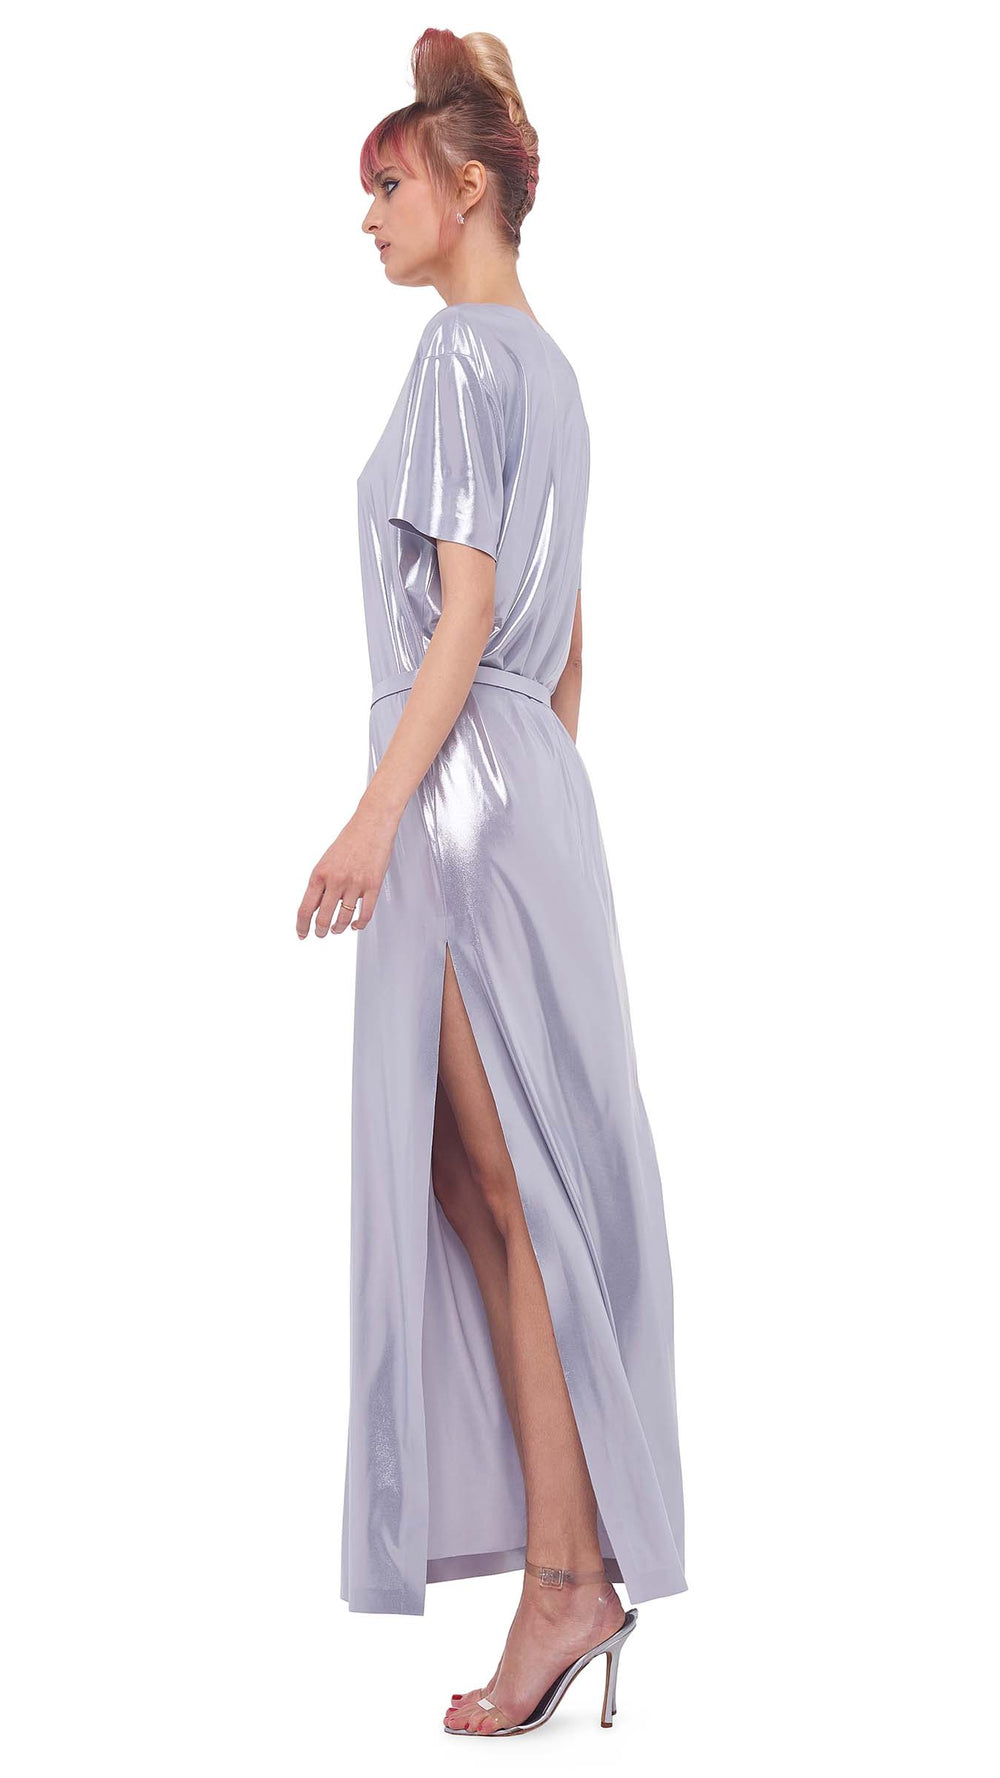 SHORT SLEEVE BOXY GOWN WITH SIDE SLIT